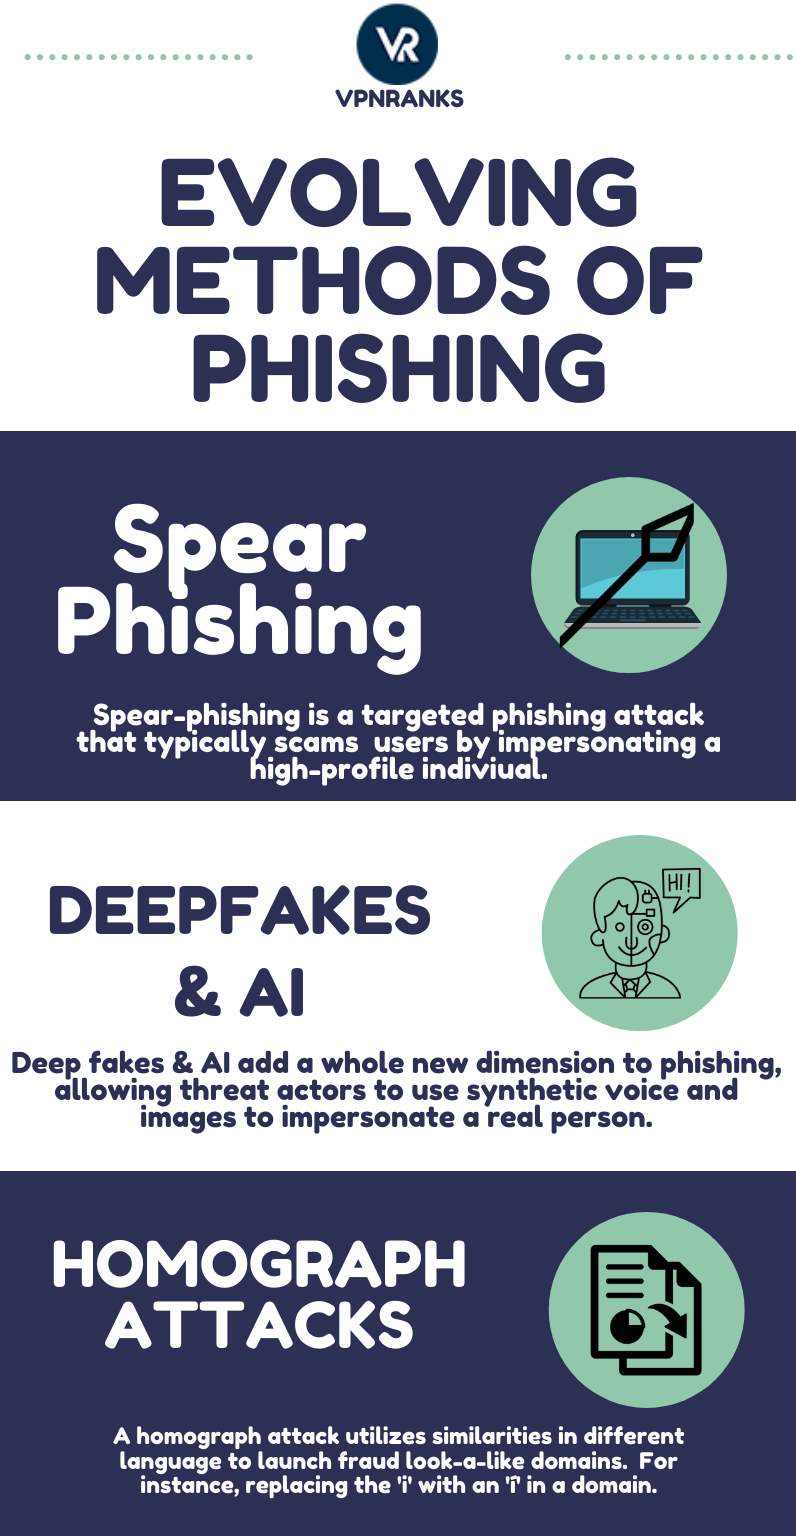 Evolving-methods-of-phishing